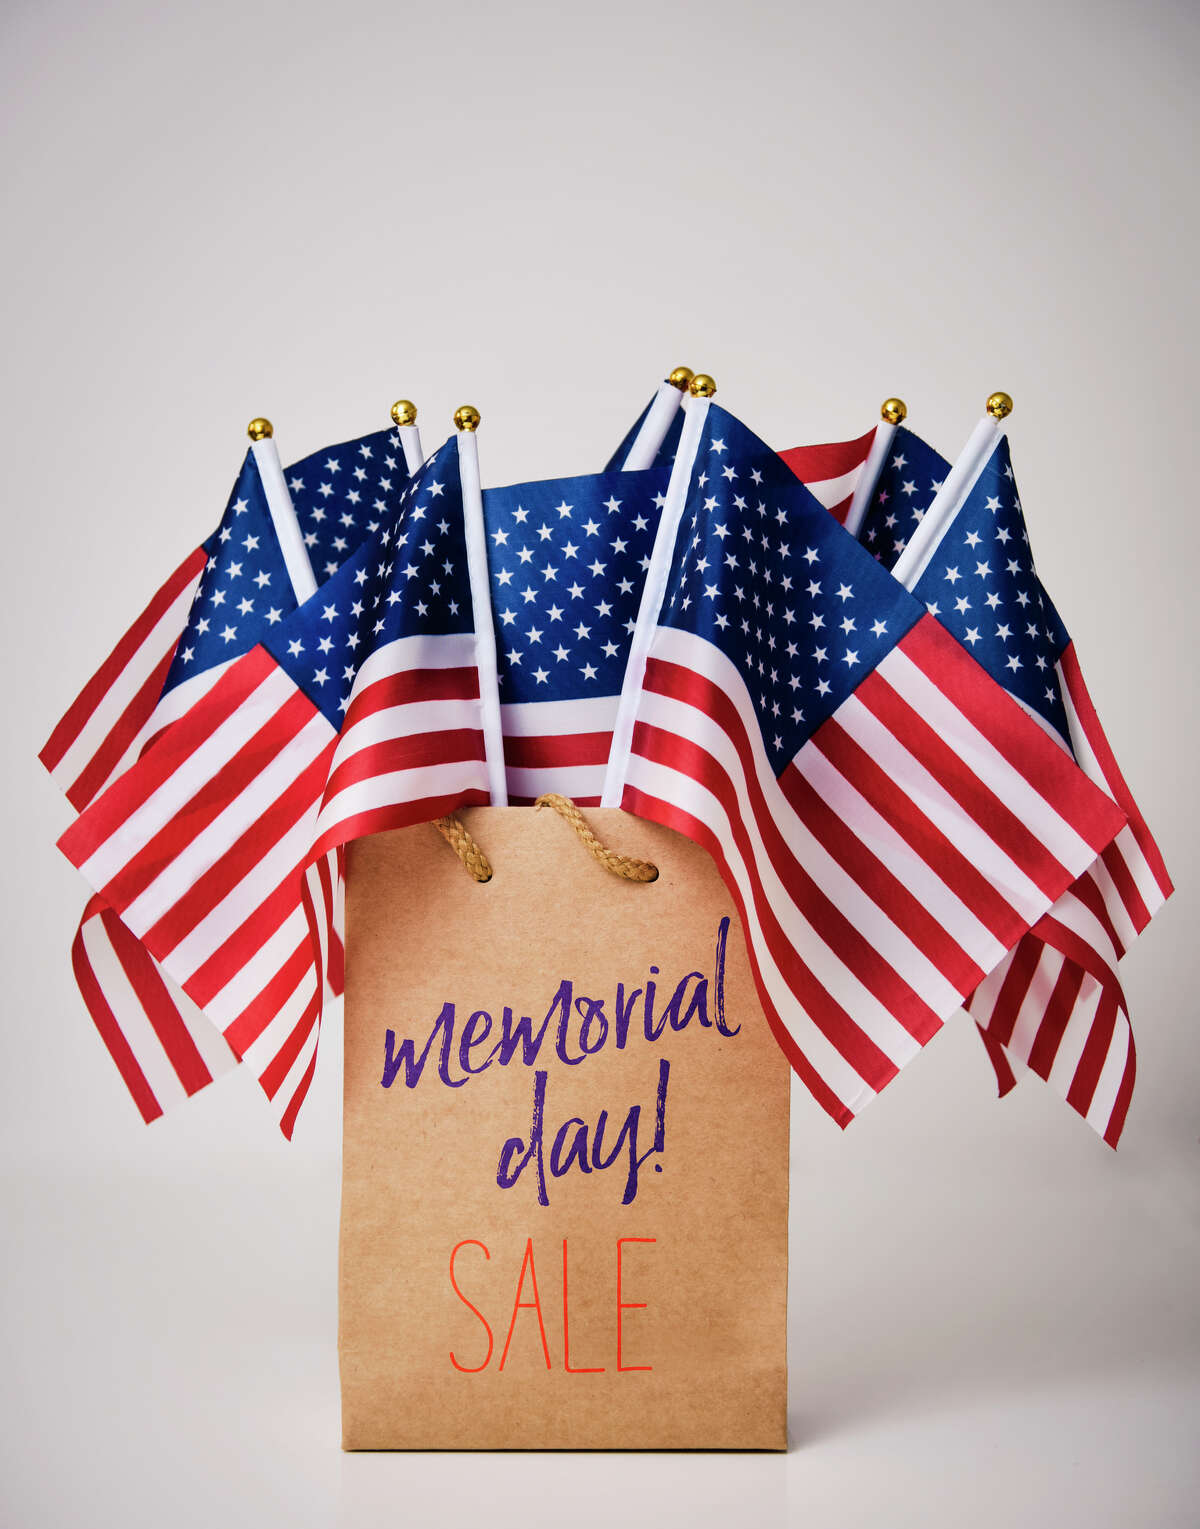 Retailers love linking sales to long holiday weekends, like Memorial Day.